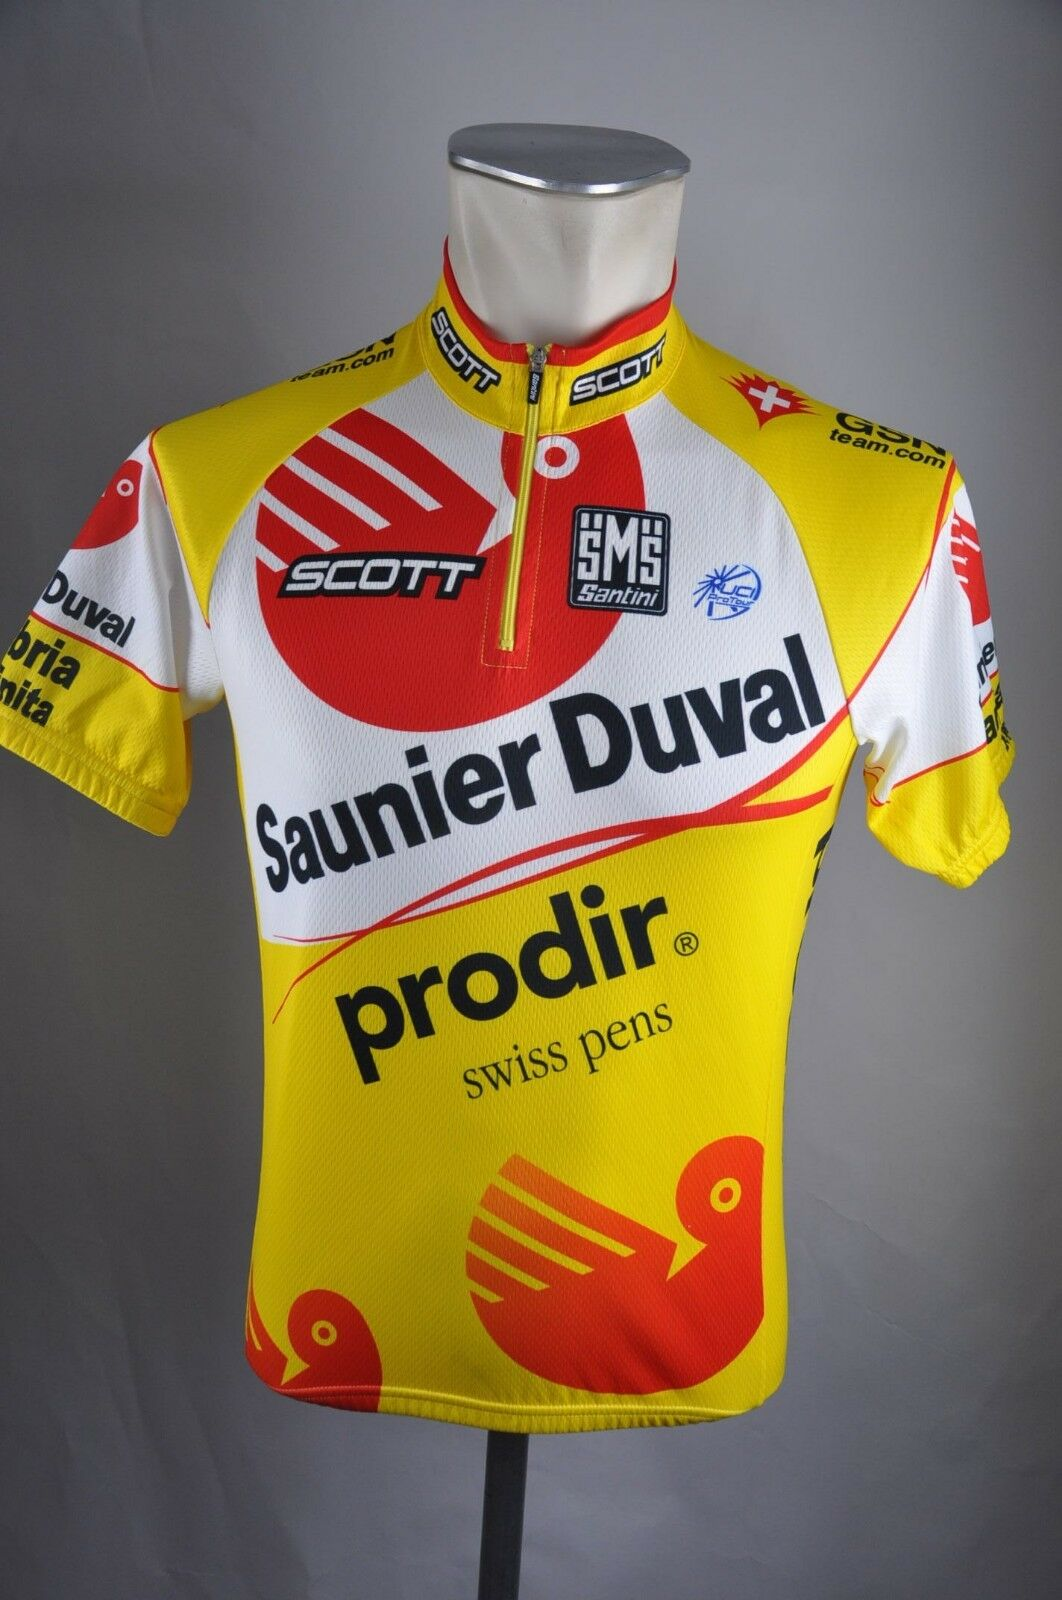 Santini Team Saunier Duval Jersey Size S 42  BW 48cm Bike Cycling Jersey Shirt hz1  with 100% quality and %100 service